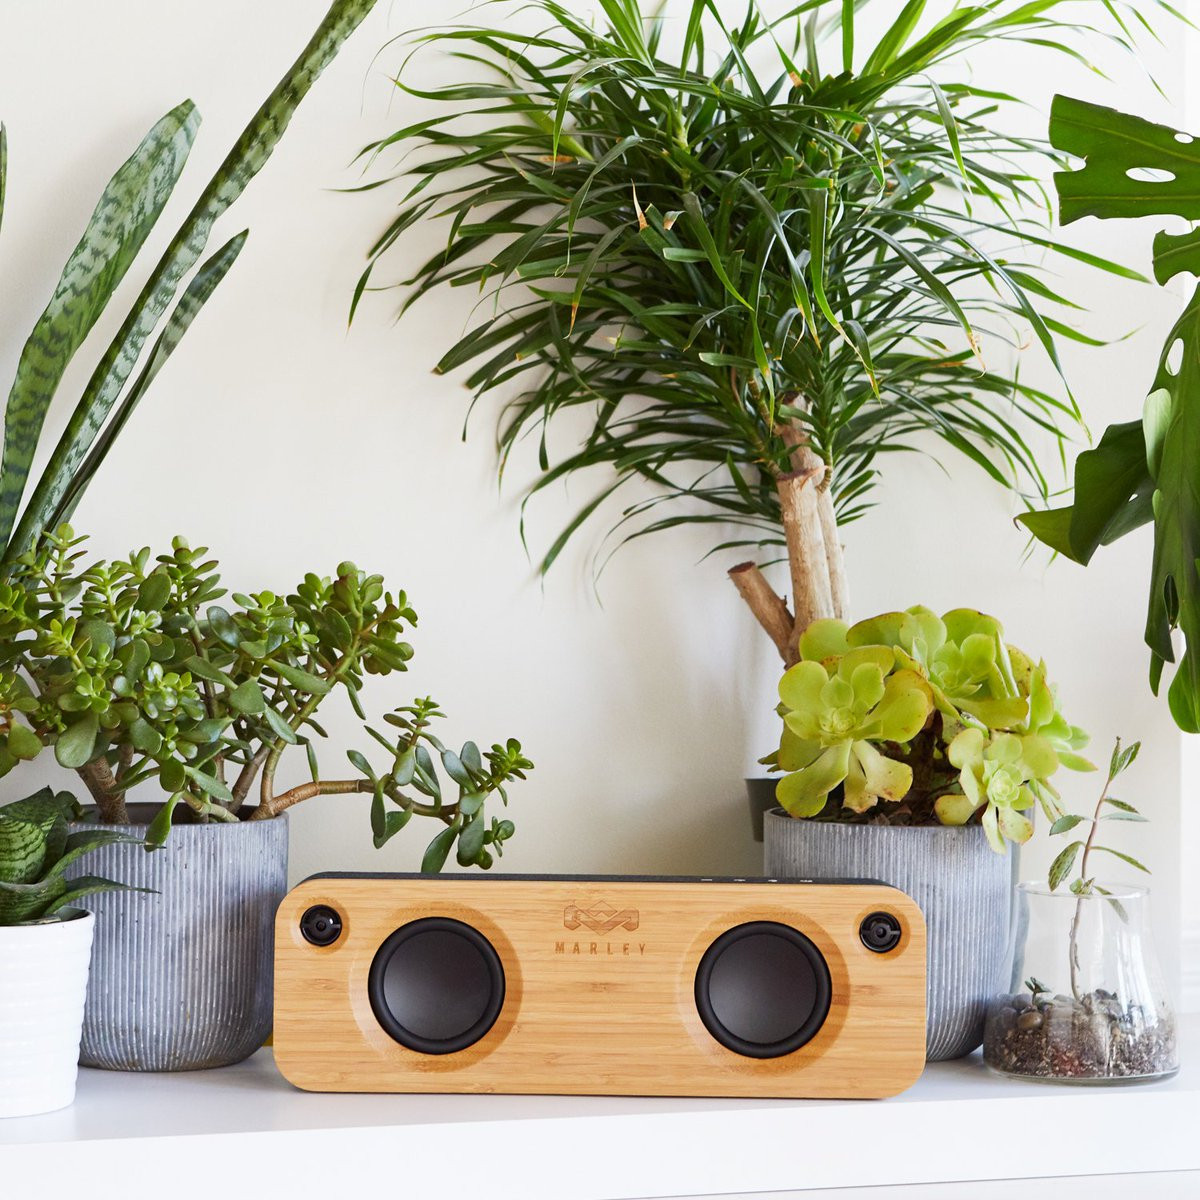 Want to win a pair of Positive Vibrations 2 Headphones or a Get Together Speaker? Lucky for you, we have paired up with @houseofmarley to give away these awesome products to 3 winners! Simply follow InMotion and House of Marley on all social media platforms! #giveaway #contest